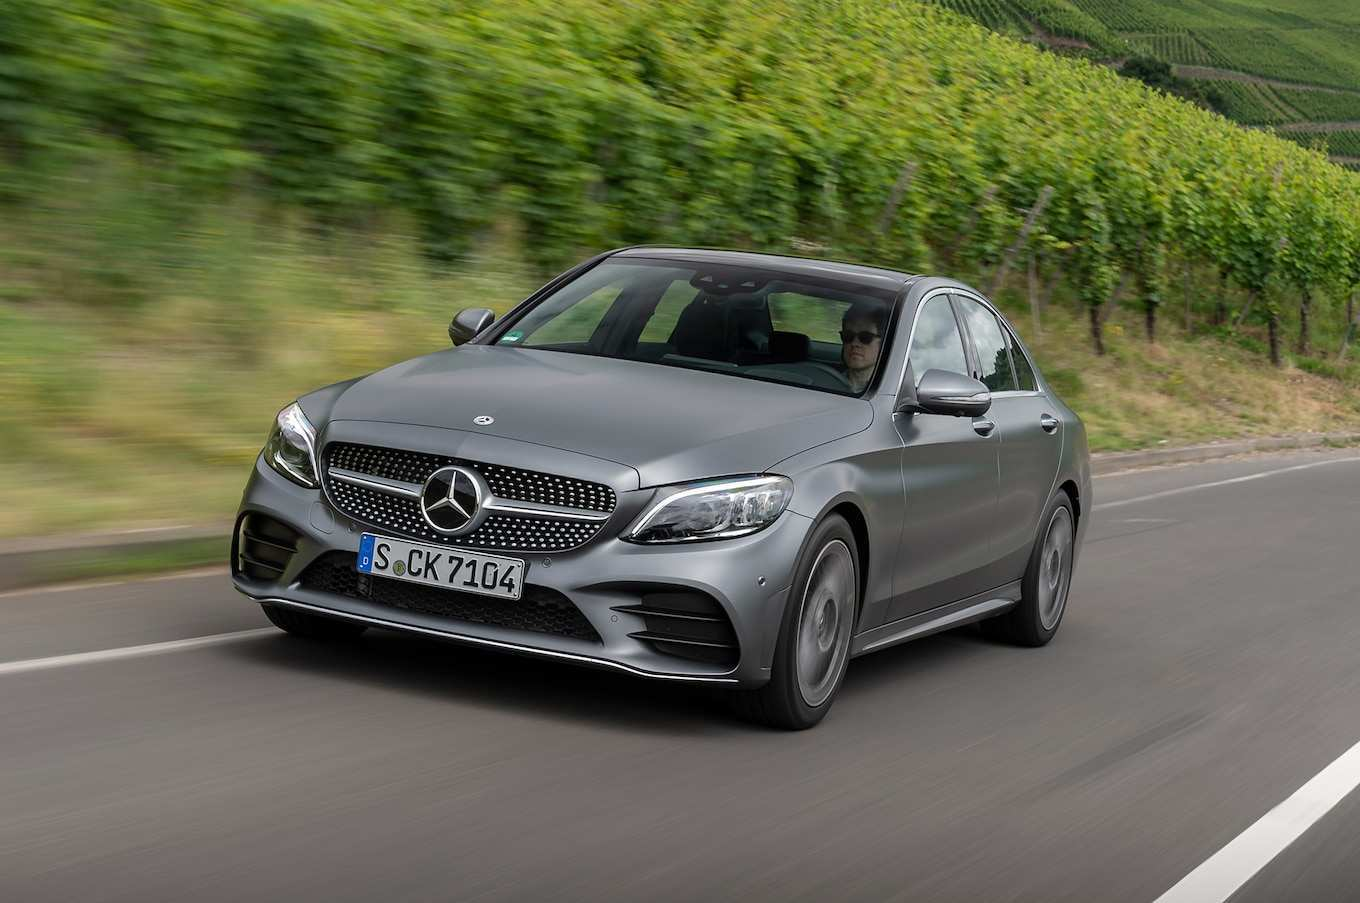 49 All New Best Mercedes 2019 Drivers Release Price and Review with Best Mercedes 2019 Drivers Release